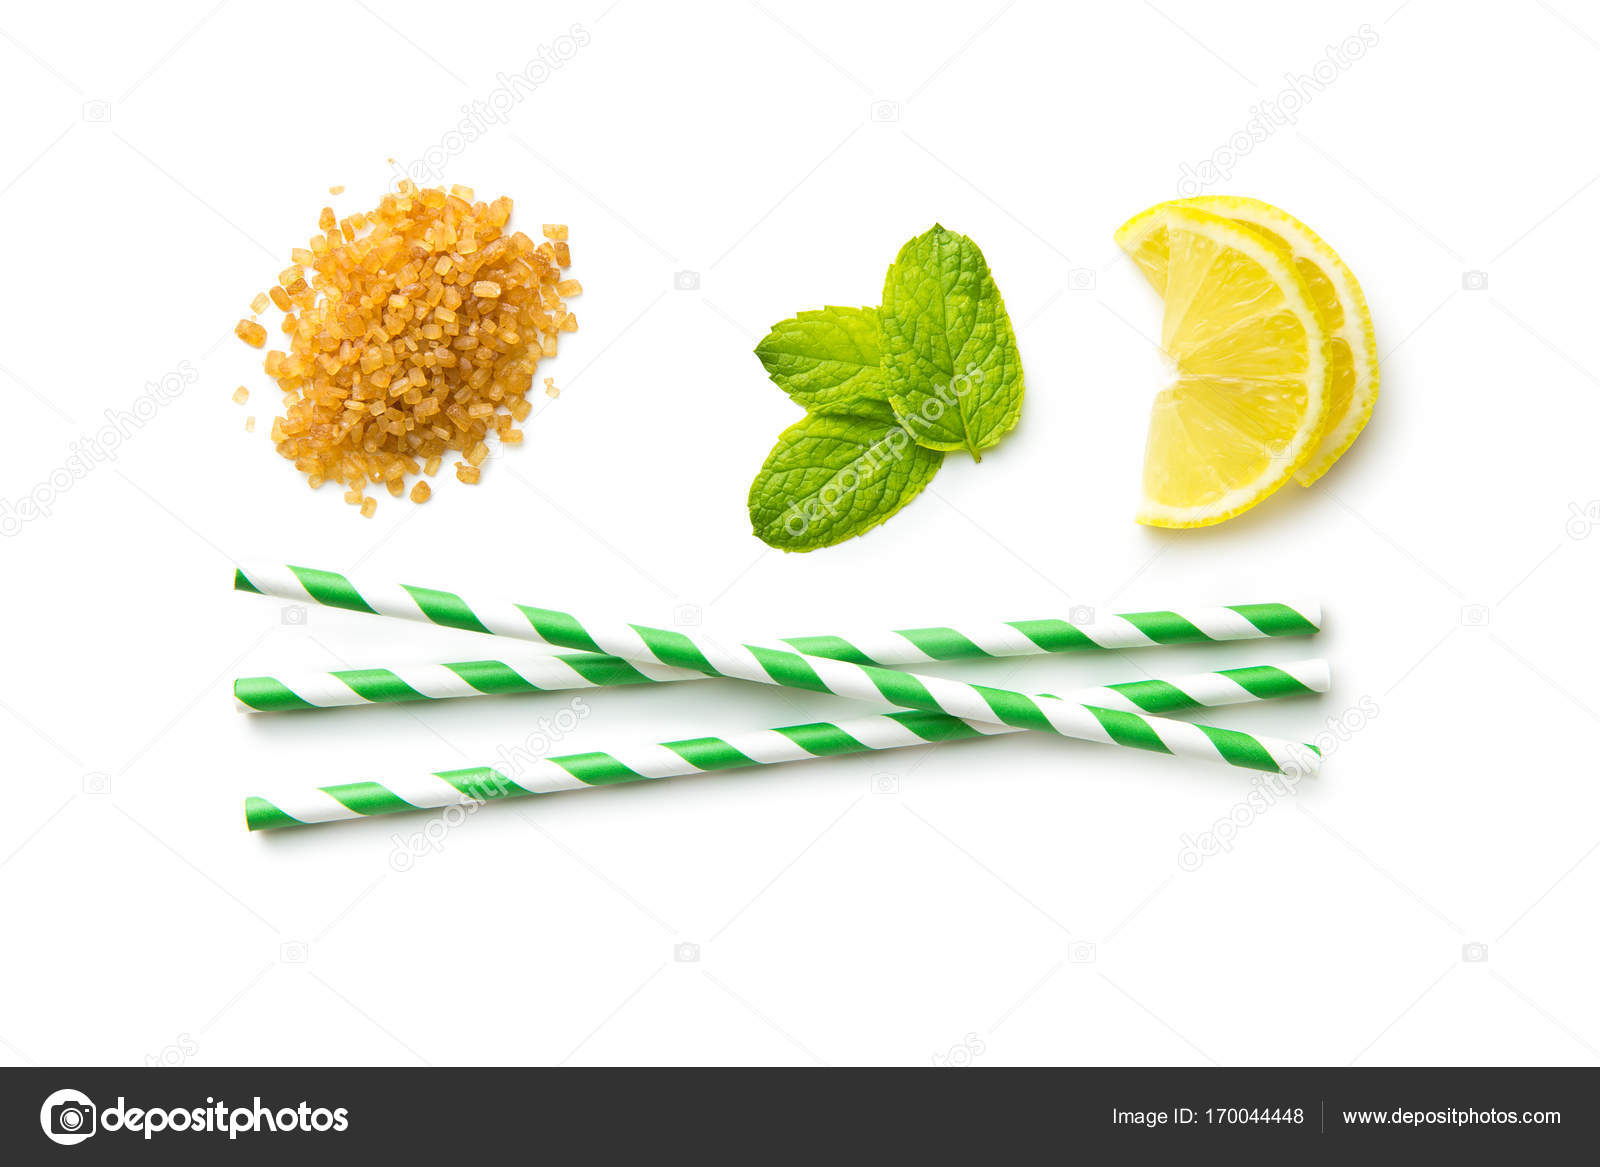 Mojito Ingredients Lemon Mint And Cane Sugar Stock Photo